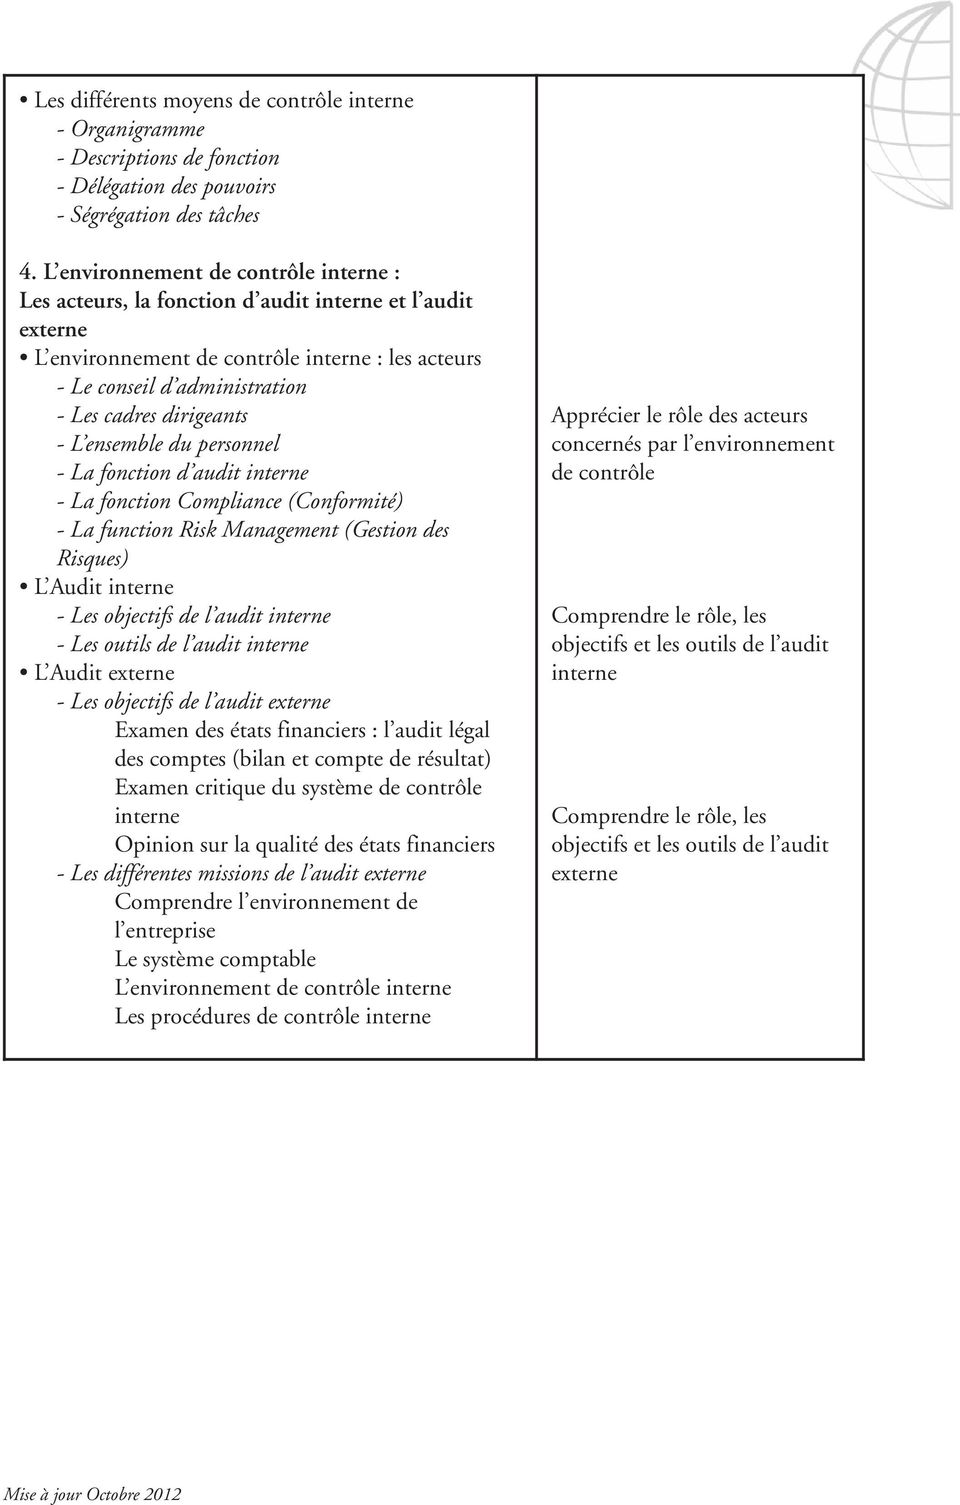 dirigeants - L ensemble du personnel - La fonction d audit interne - La fonction Compliance (Conformité) - La function Risk Management (Gestion des Risques) L Audit interne - Les objectifs de l audit